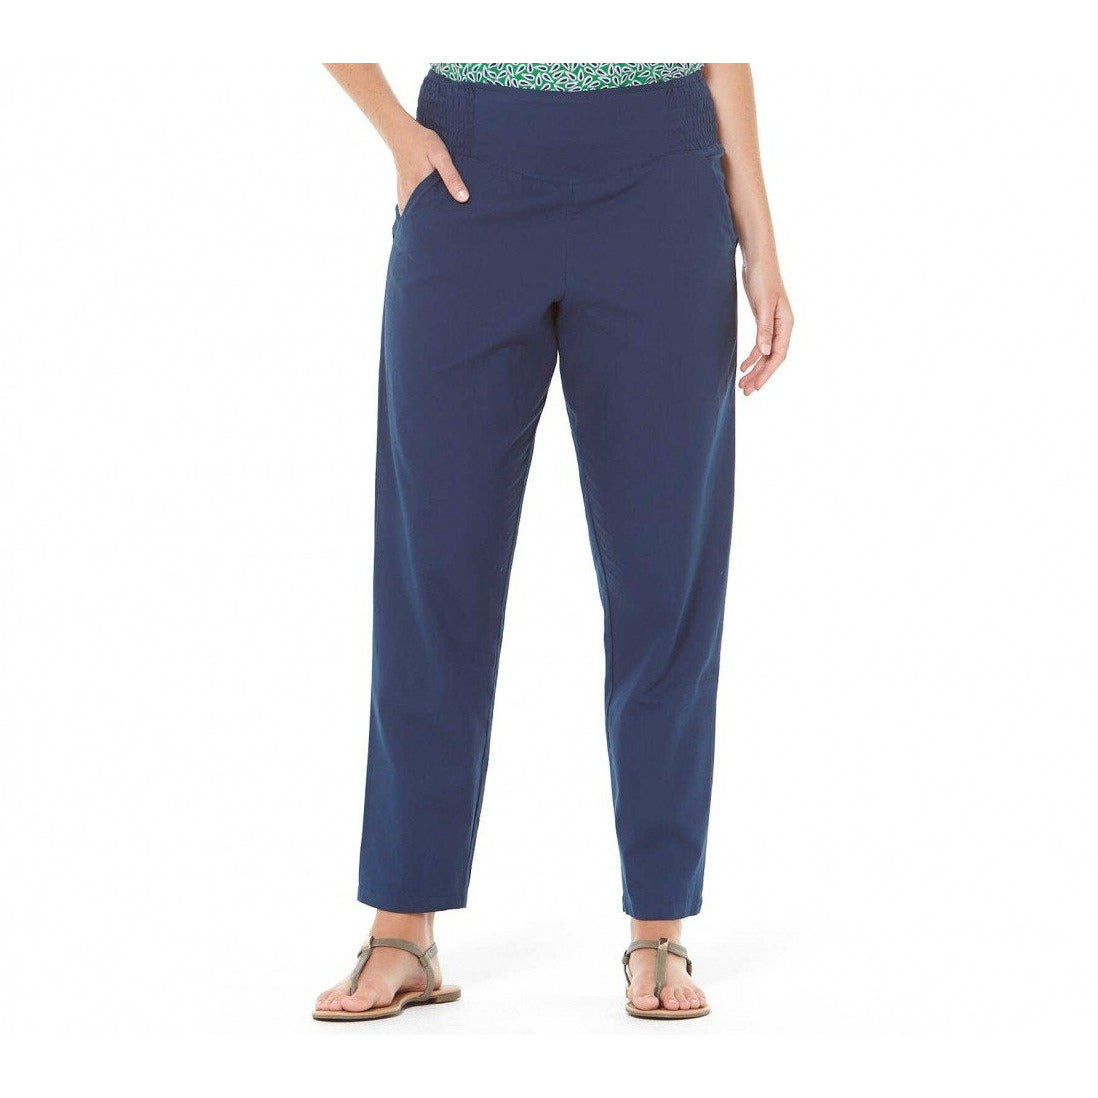 Rasaleela Deepika cotton pants in Navy